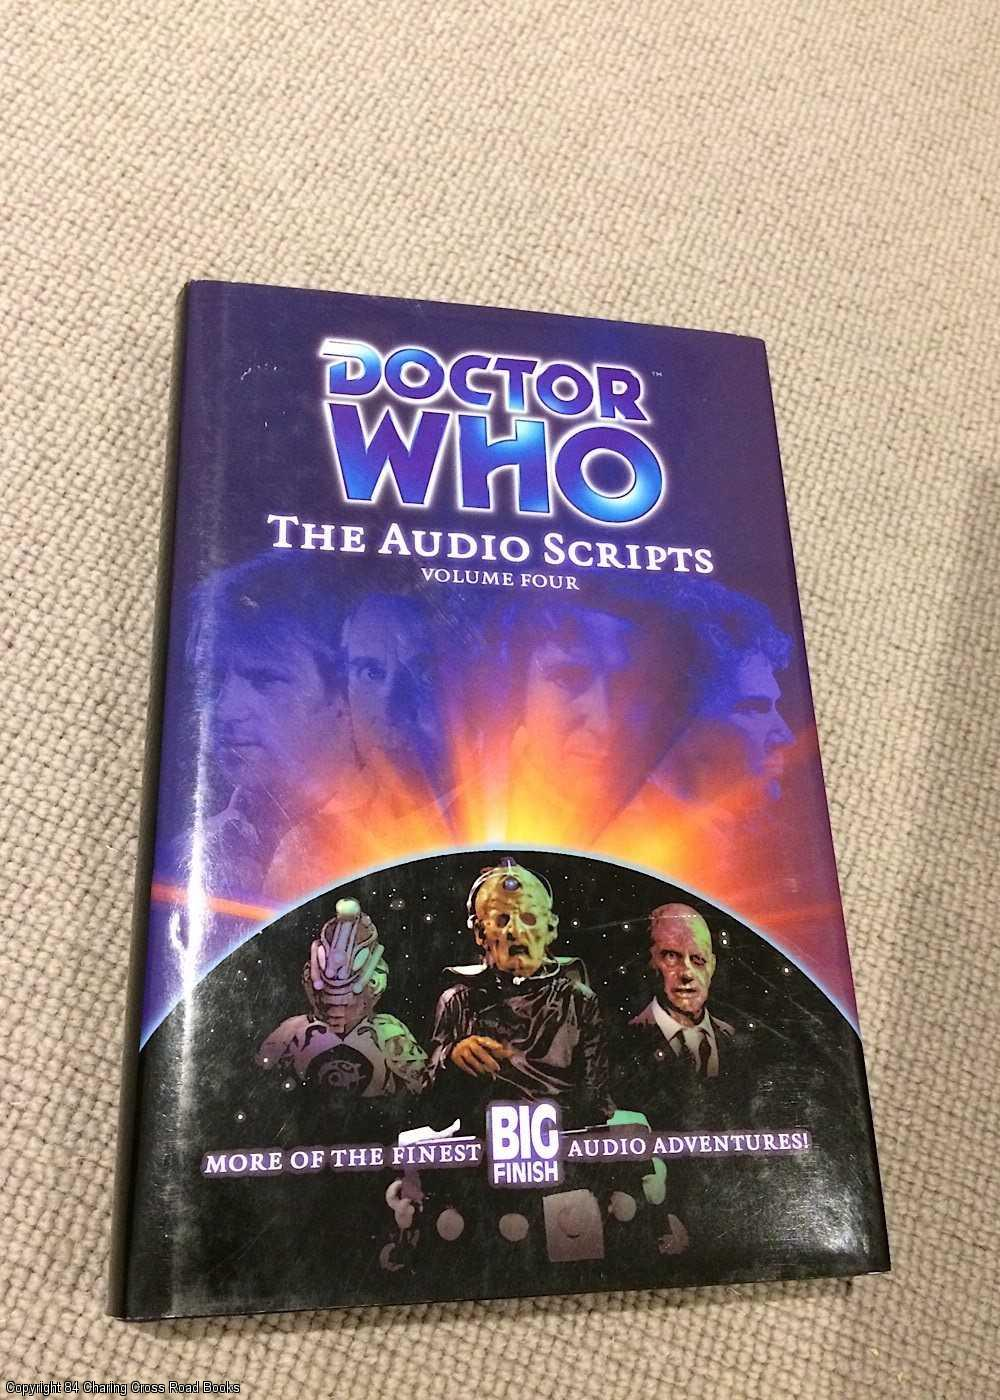 FARRINGTON, IAN - Doctor Who The Audio Scripts Volume Four